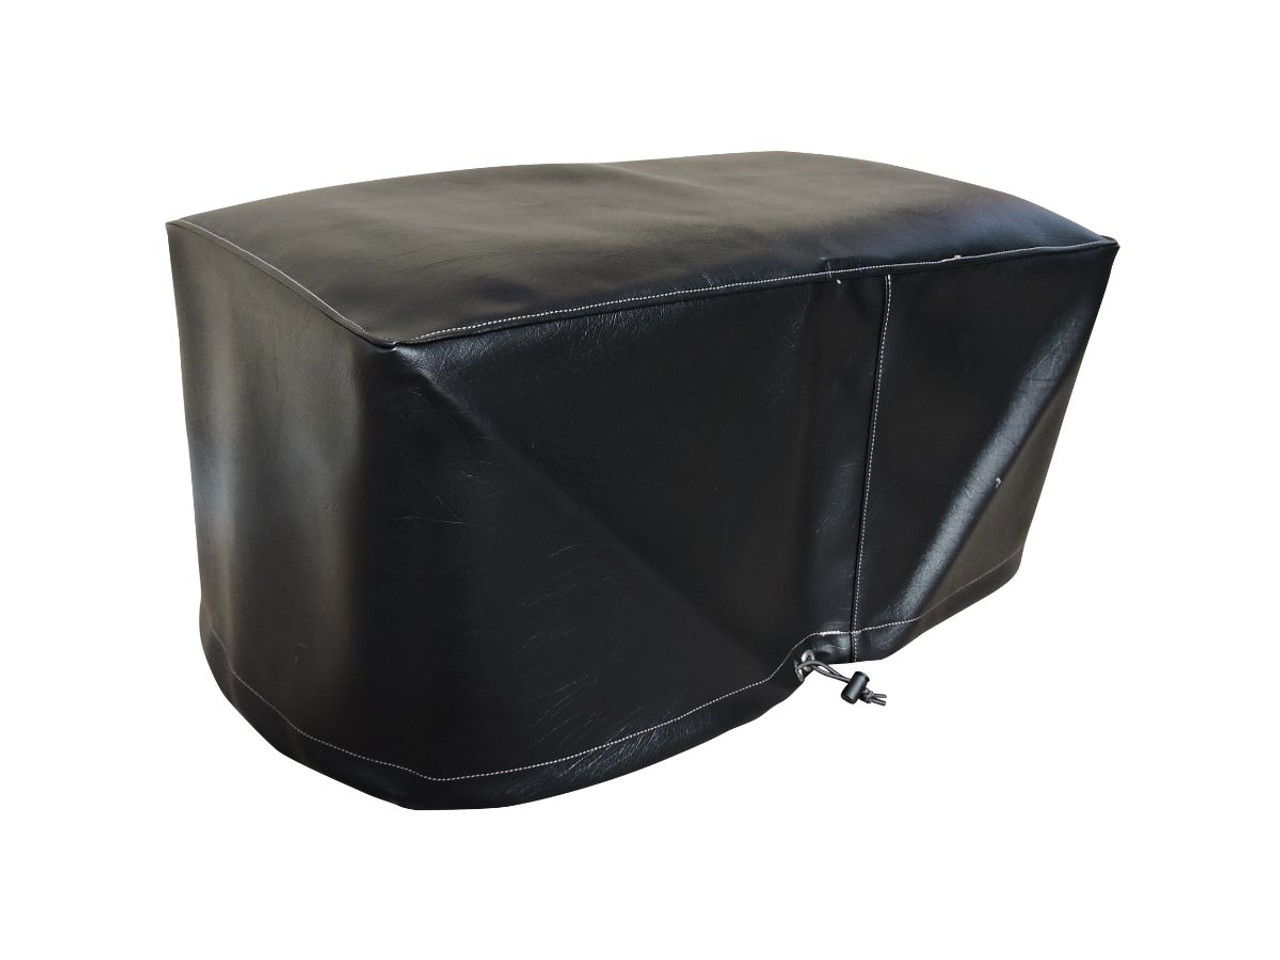 Armadillo Winterlux firepit cover